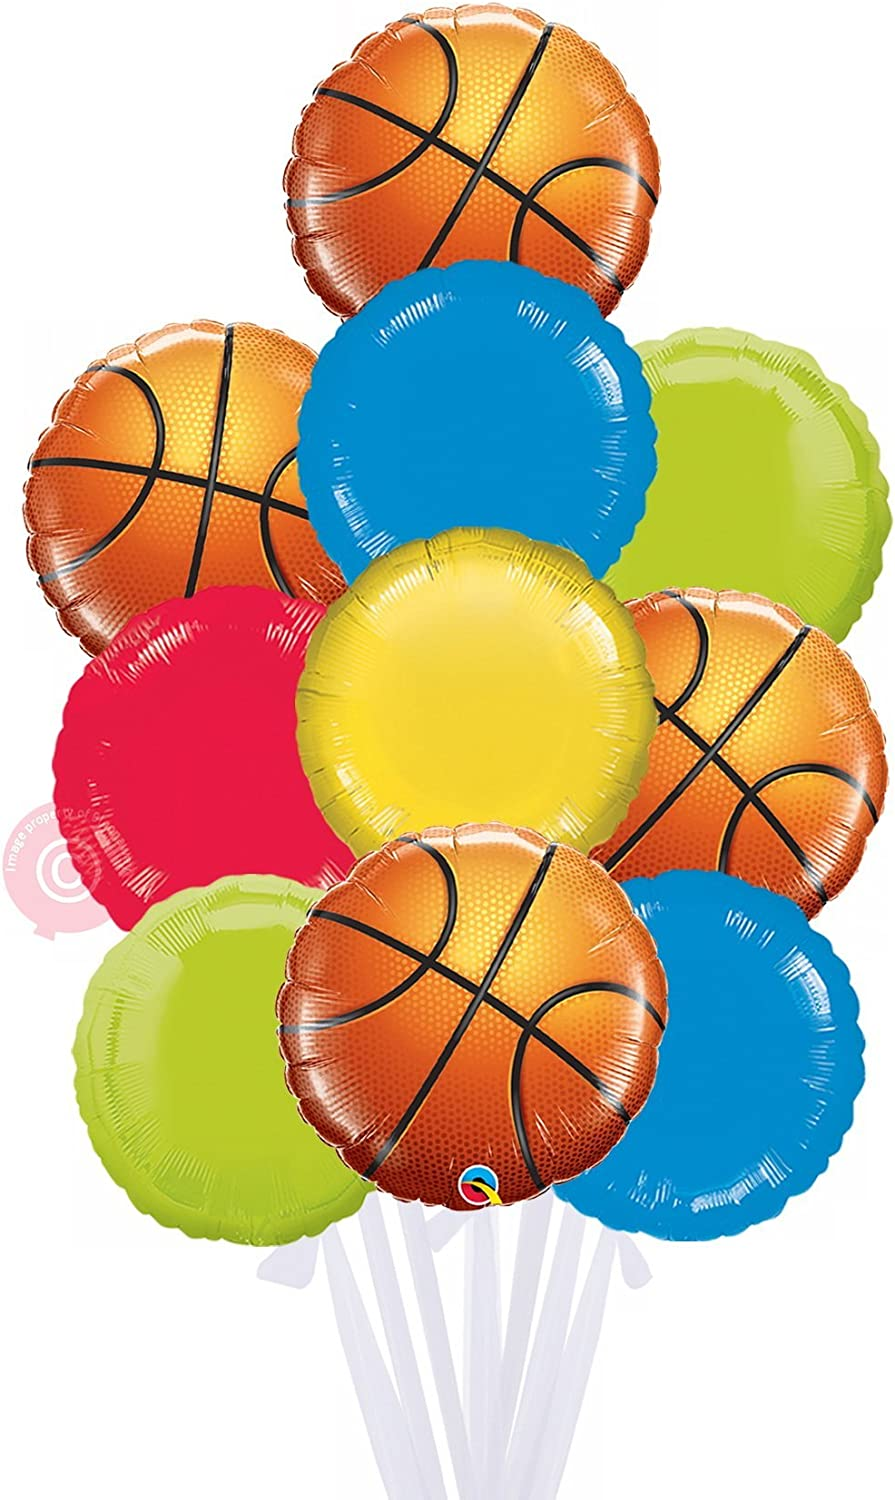 Basketball  Inflated Helium Balloon Delivered in a Box  Biggest Bouquet  10 Balloons  Bloonaway